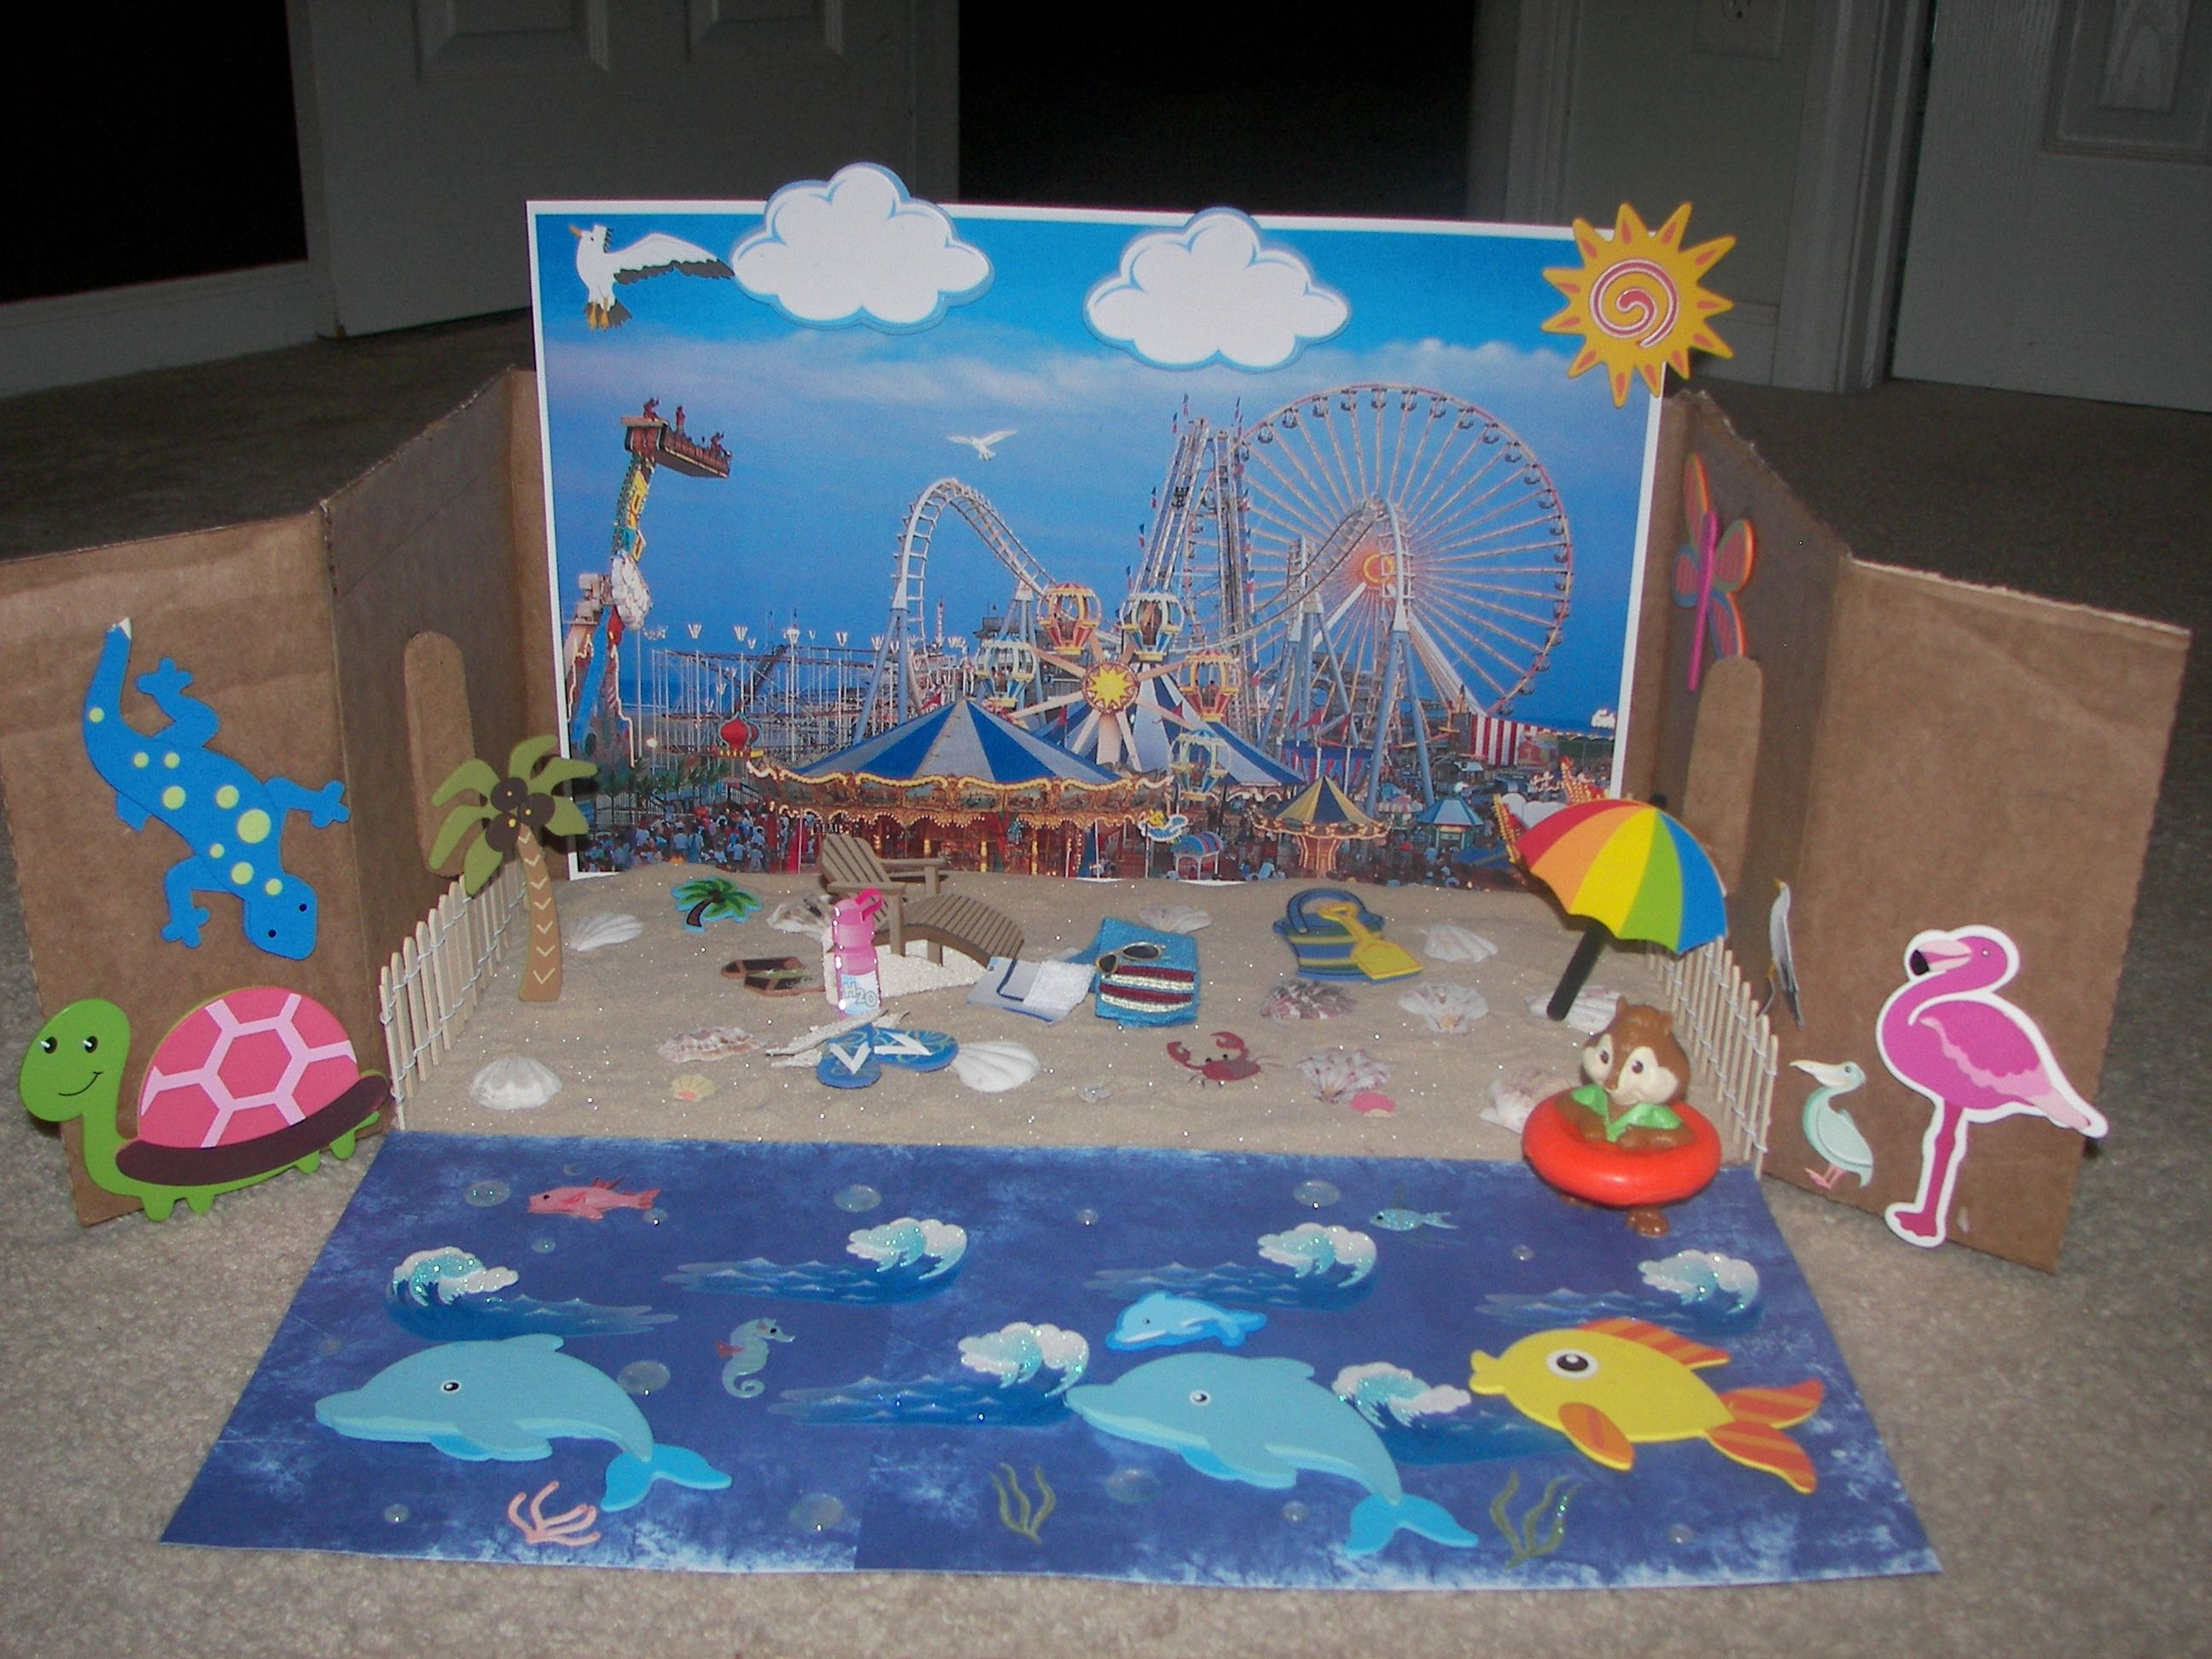 shoe diaper box diorama crafts pinterest dioramas school and teacher. Black Bedroom Furniture Sets. Home Design Ideas